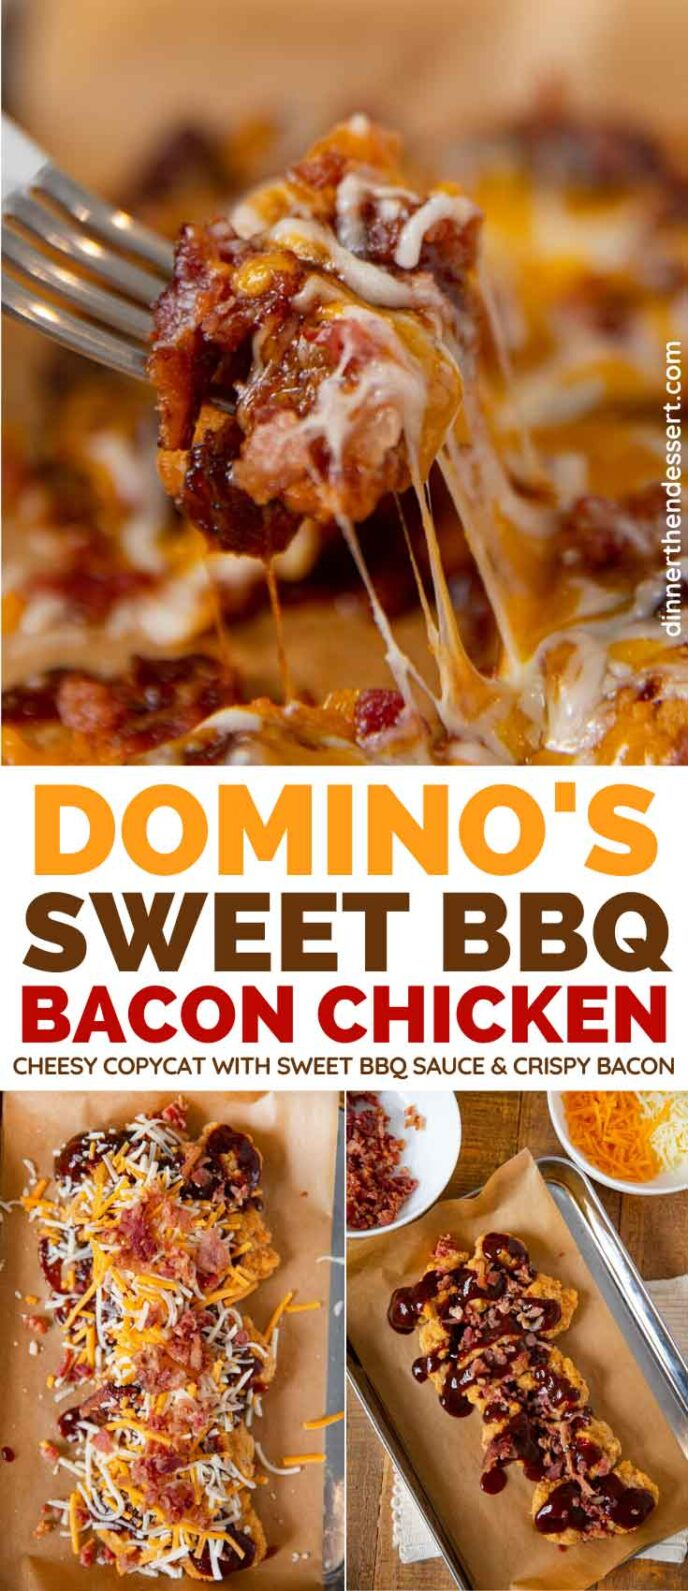 Domino's Sweet BBQ Bacon Chicken copycat collage